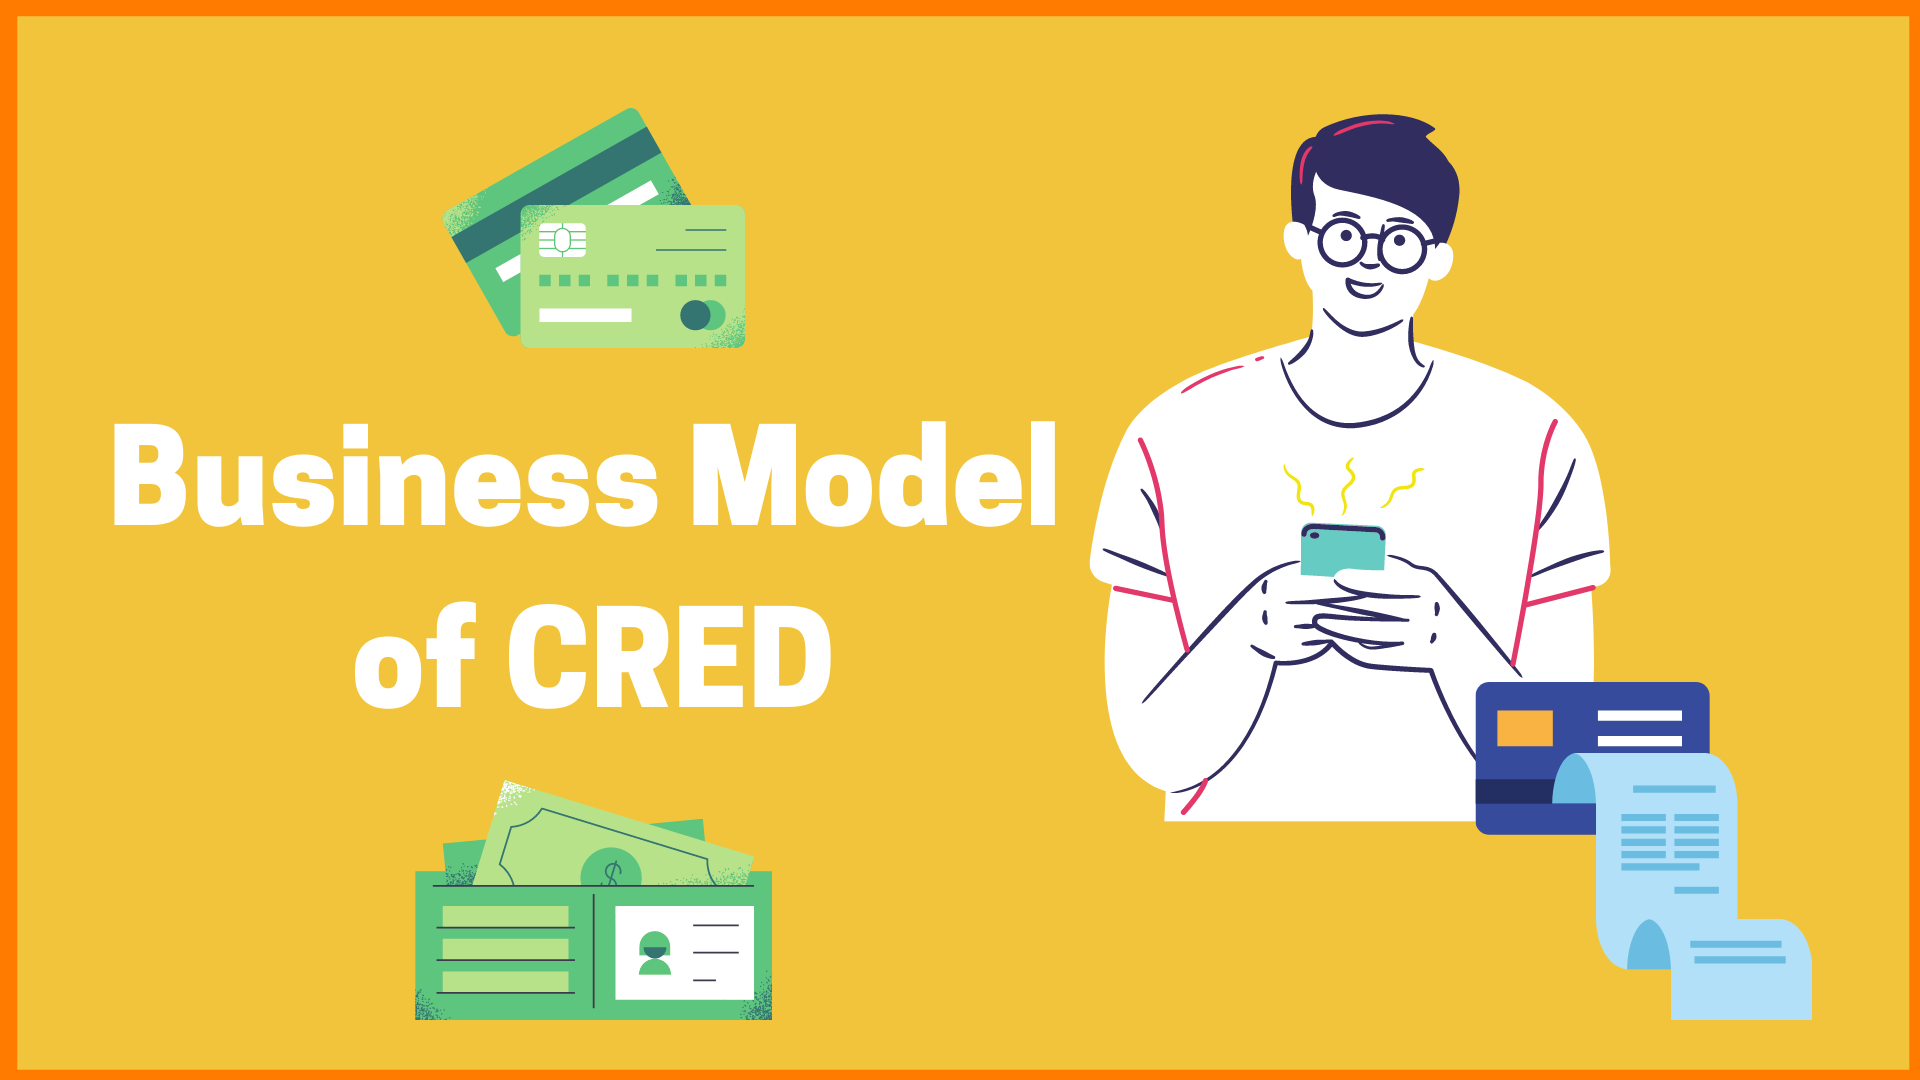 Business Model of Cred